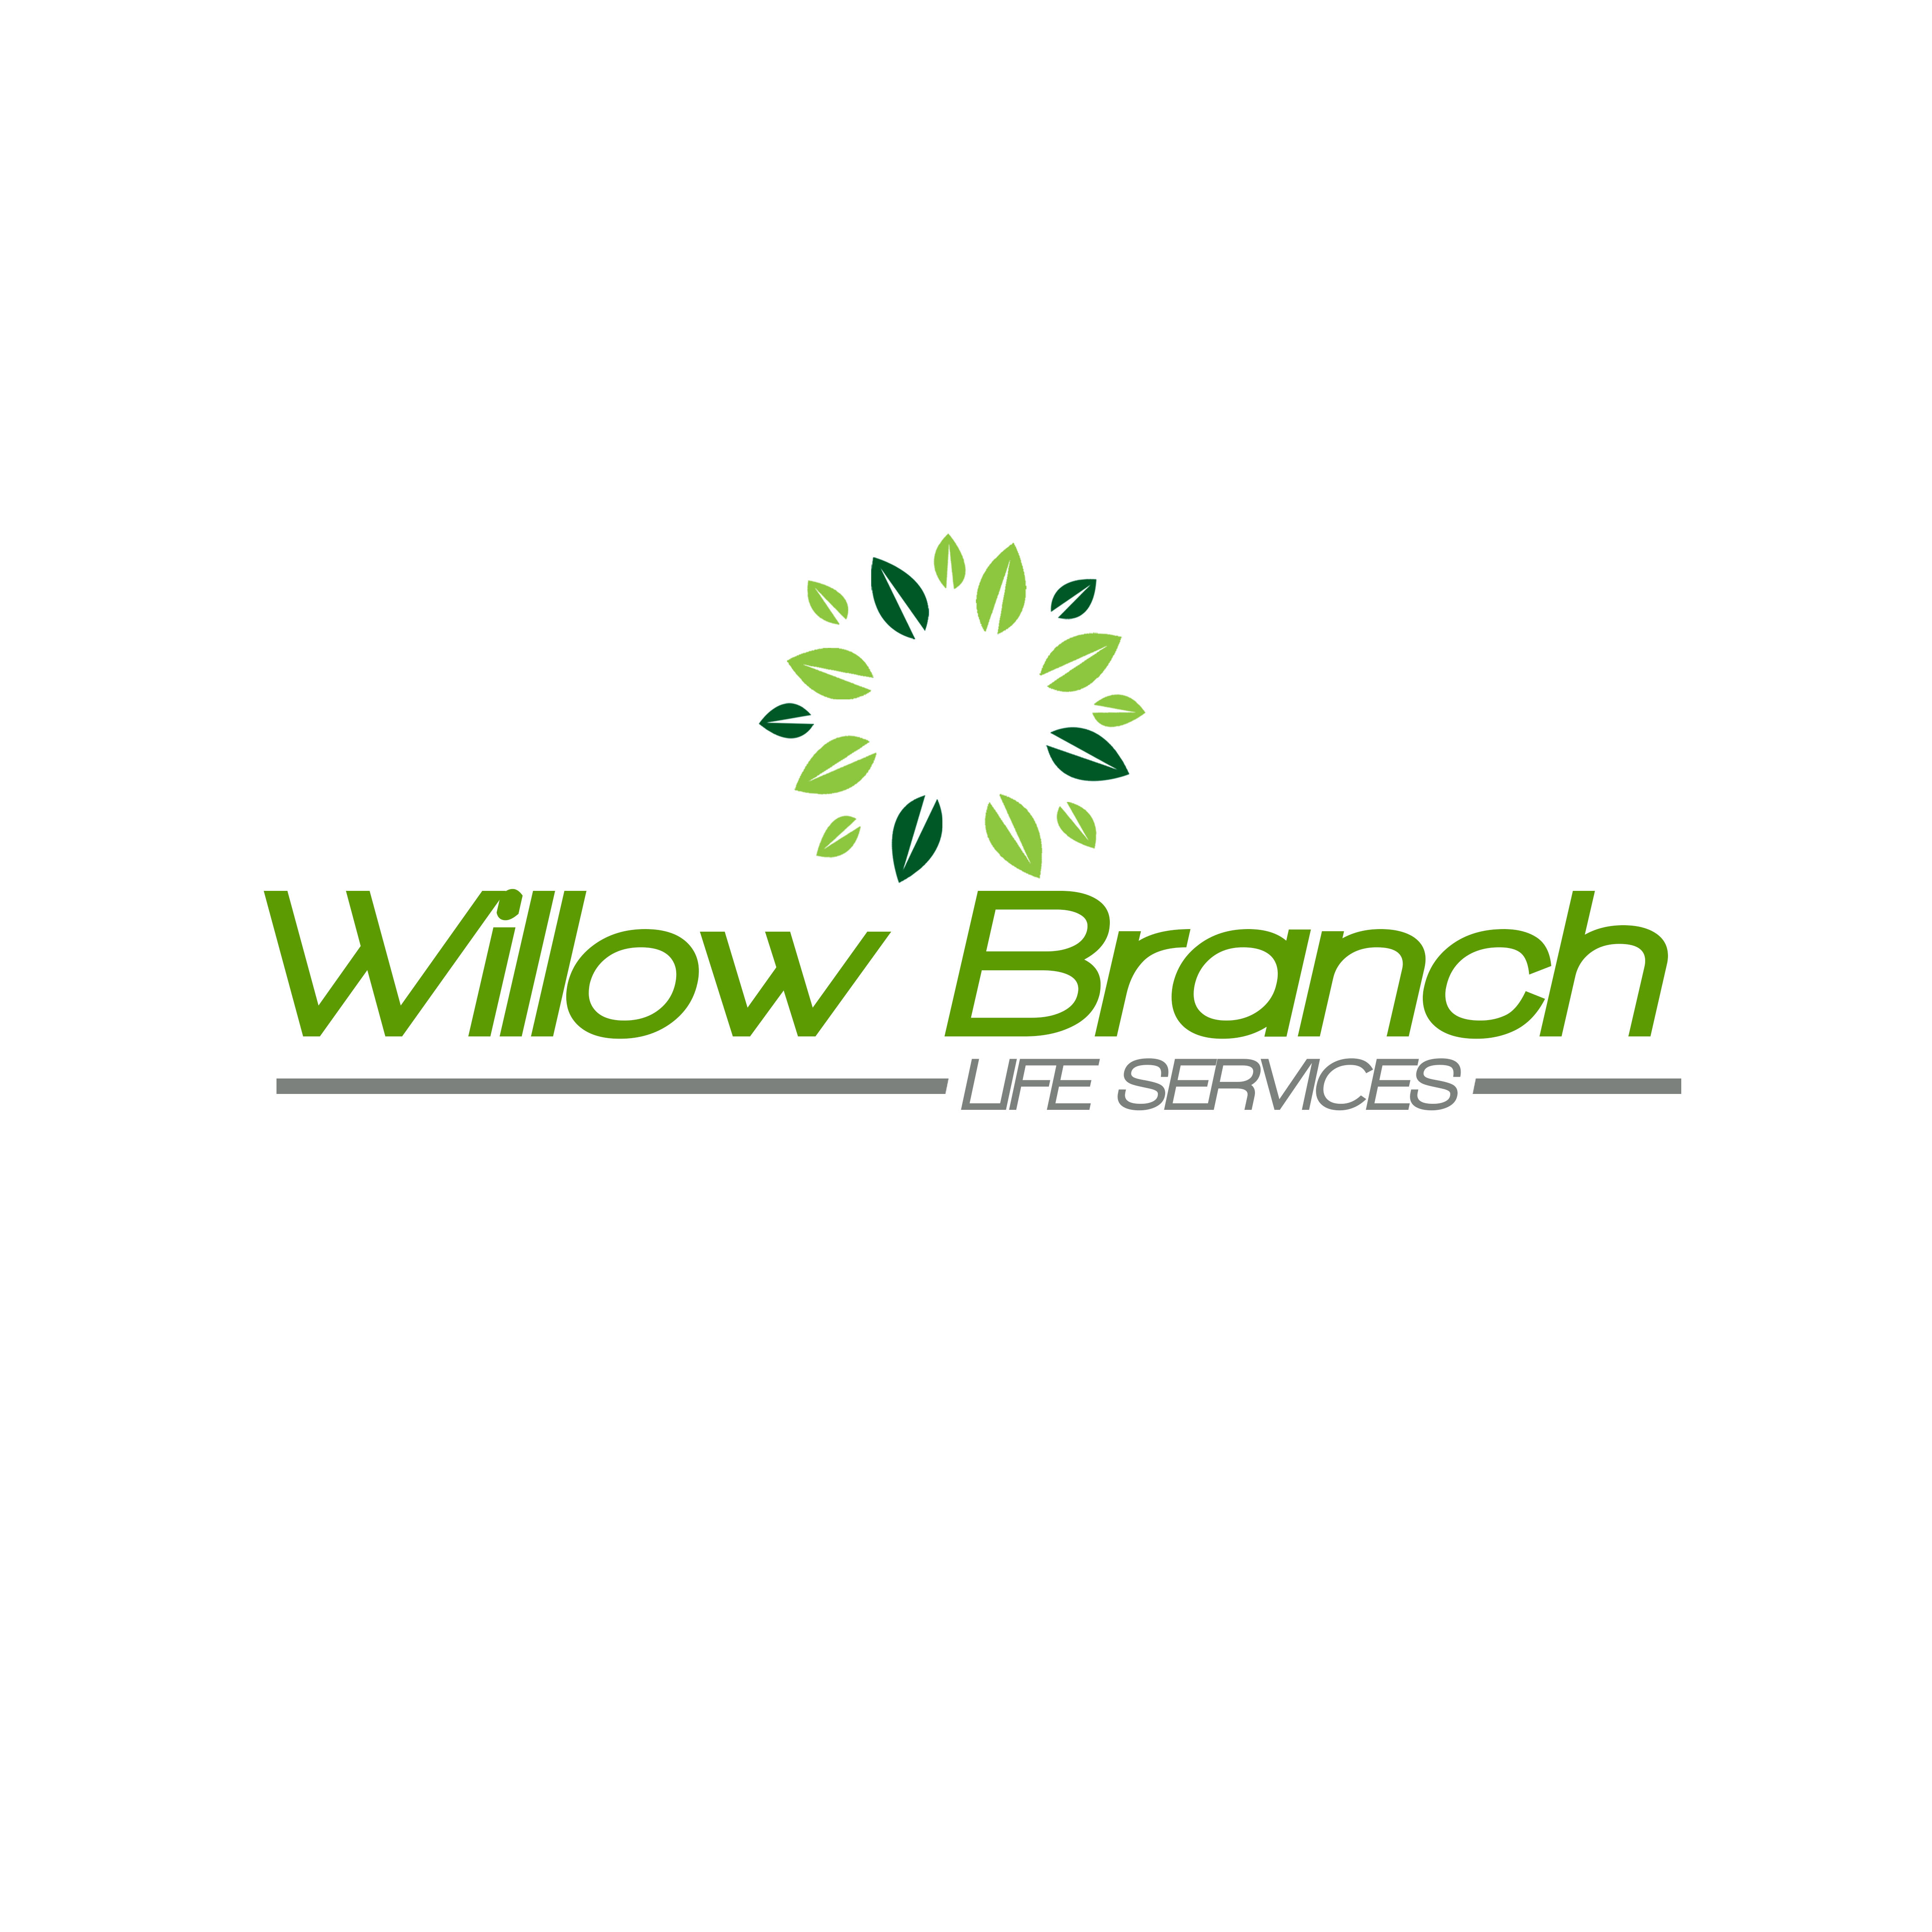 Logo Design by Private User - Entry No. 198 in the Logo Design Contest Artistic Logo Design for Willow Branch Life Service.